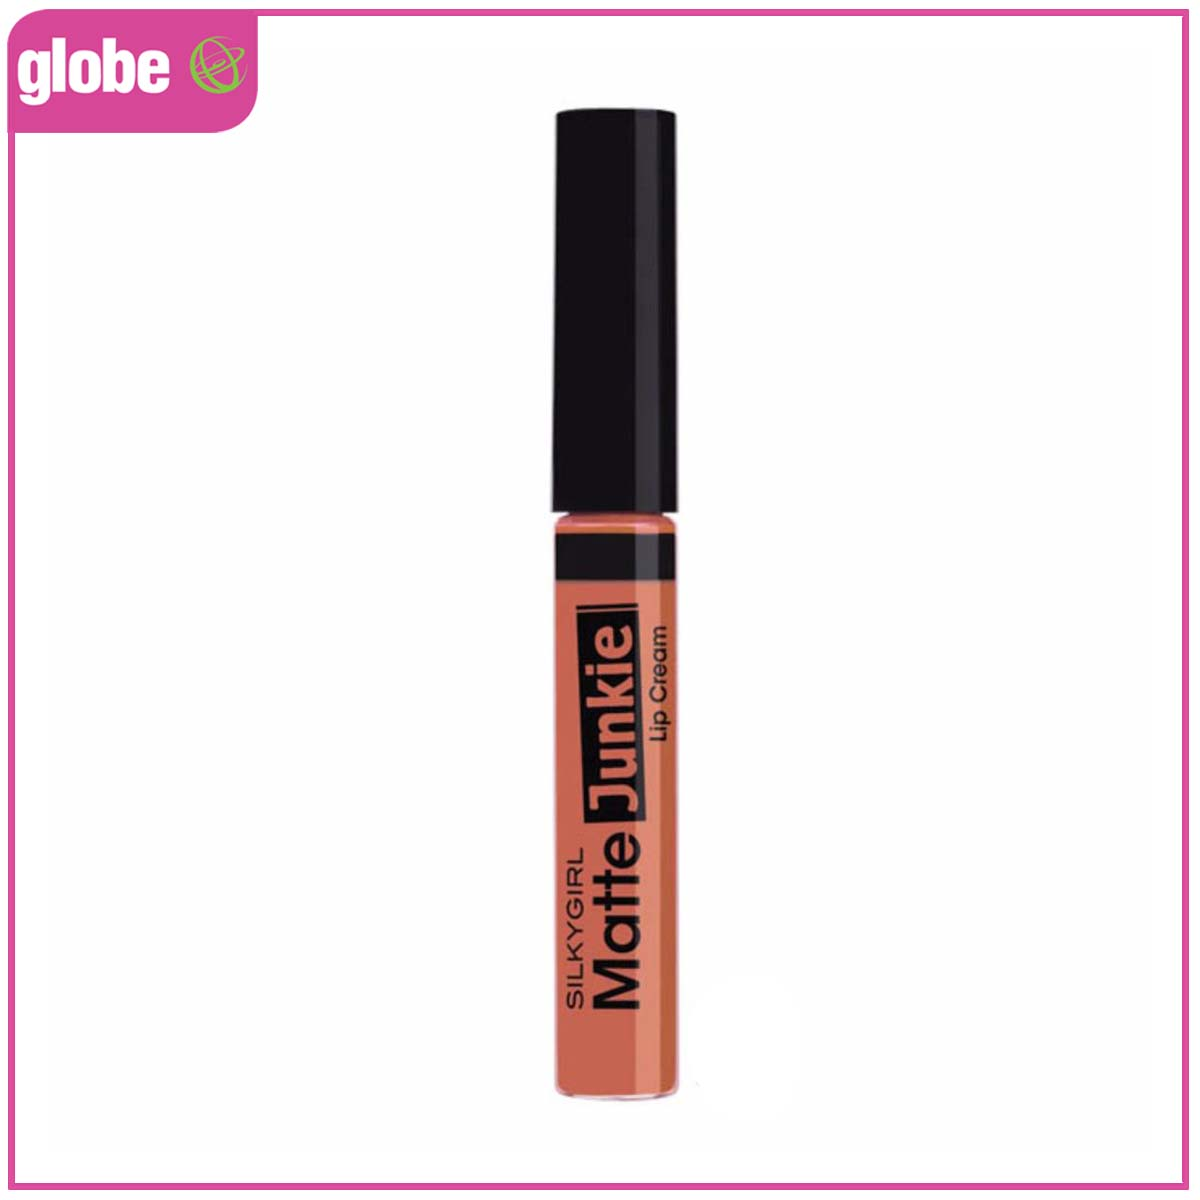 Silkygirl Matte Junkie Lip Cream 06 End 11 27 2020 709 Pm Kissproof Darling Unit